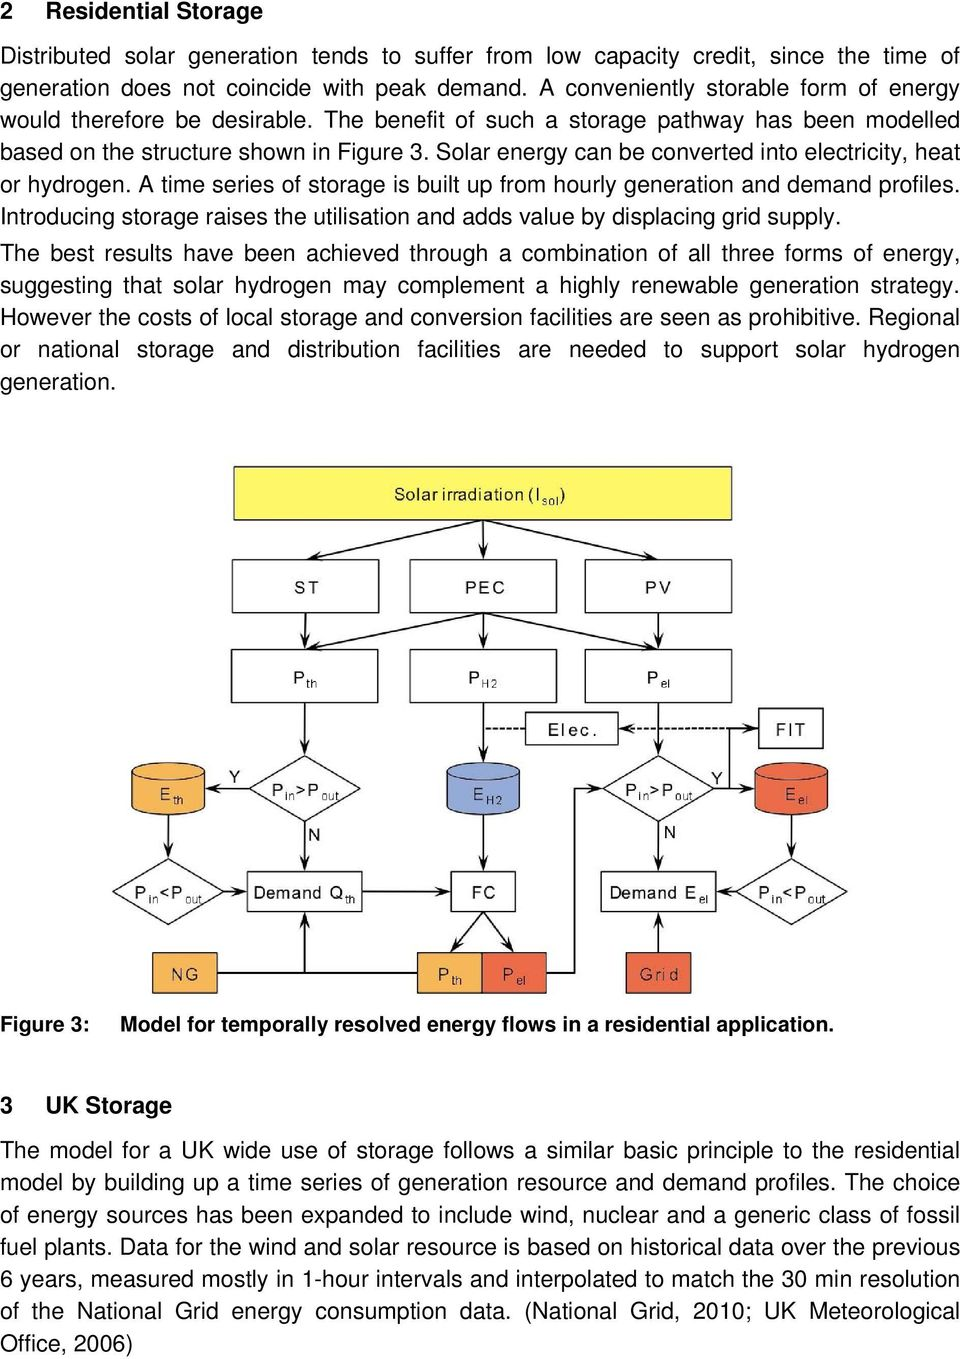 Solar energy can be converted into electricity, heat or hydrogen. A time series of storage is built up from hourly generation and demand profiles.